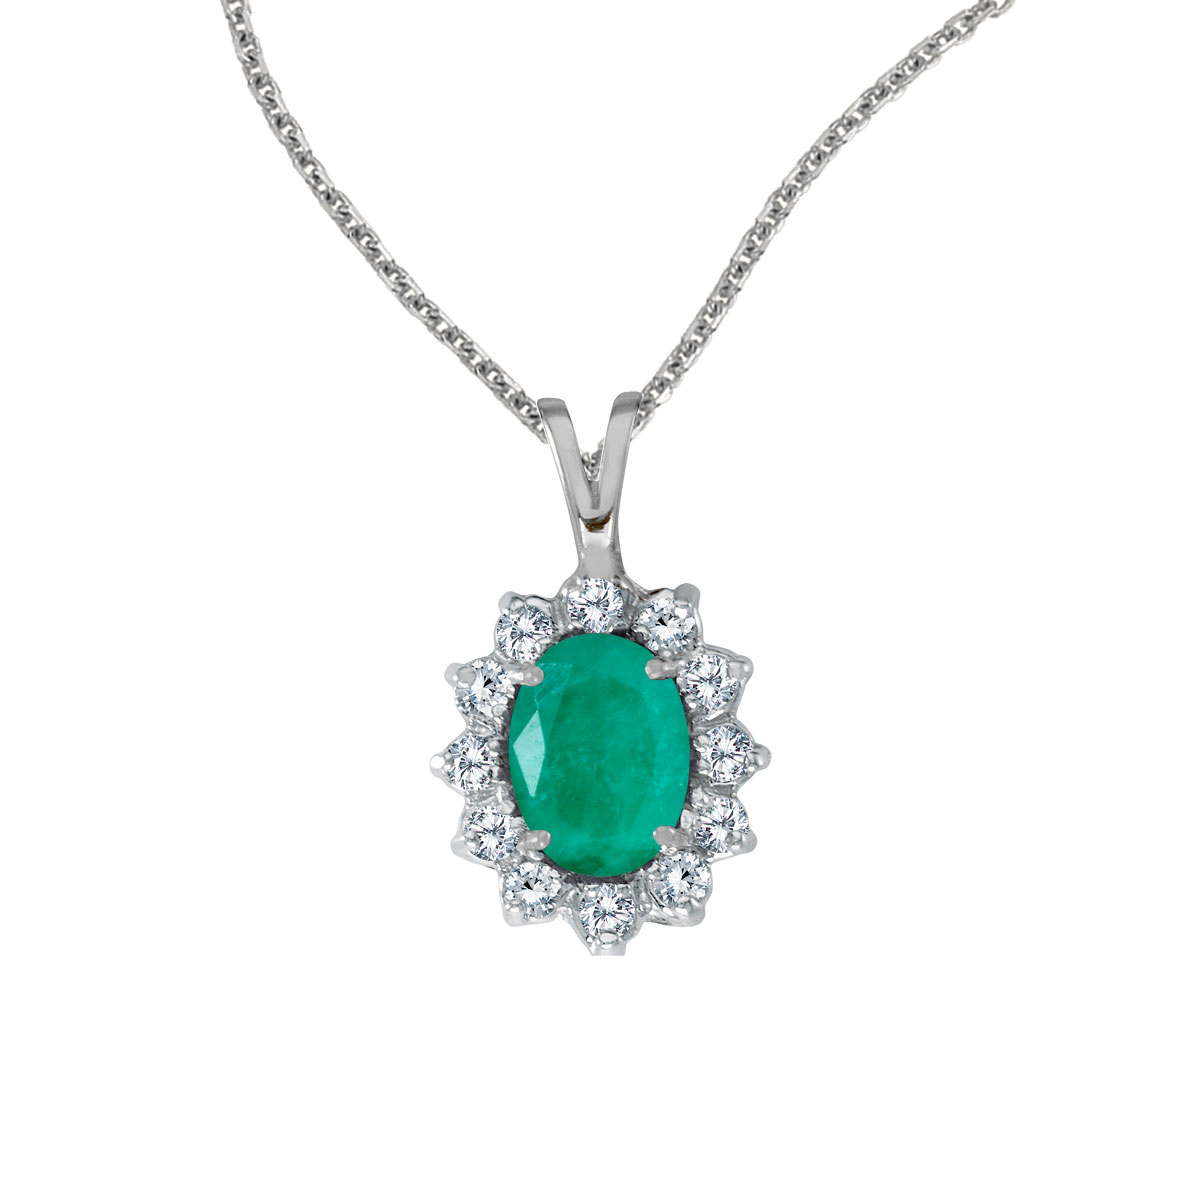 8x6 mm emerald surrounded by .30 carats of shimmering diamonds set in 14k white gold. Perfect for...